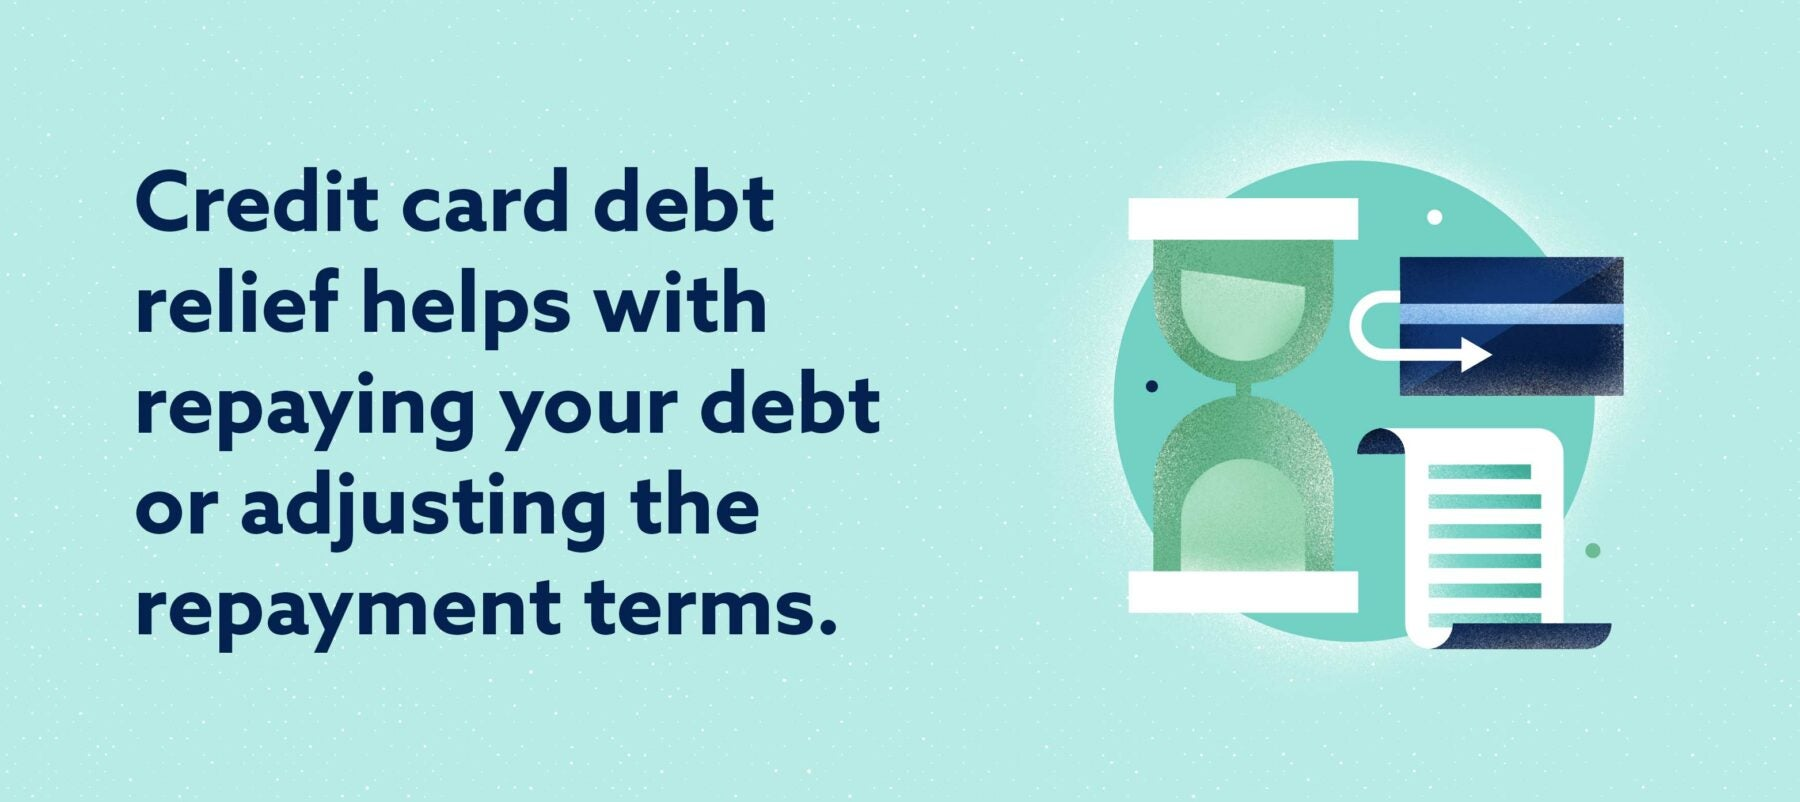 Credit Card debt relief helps with repaying your debt Image